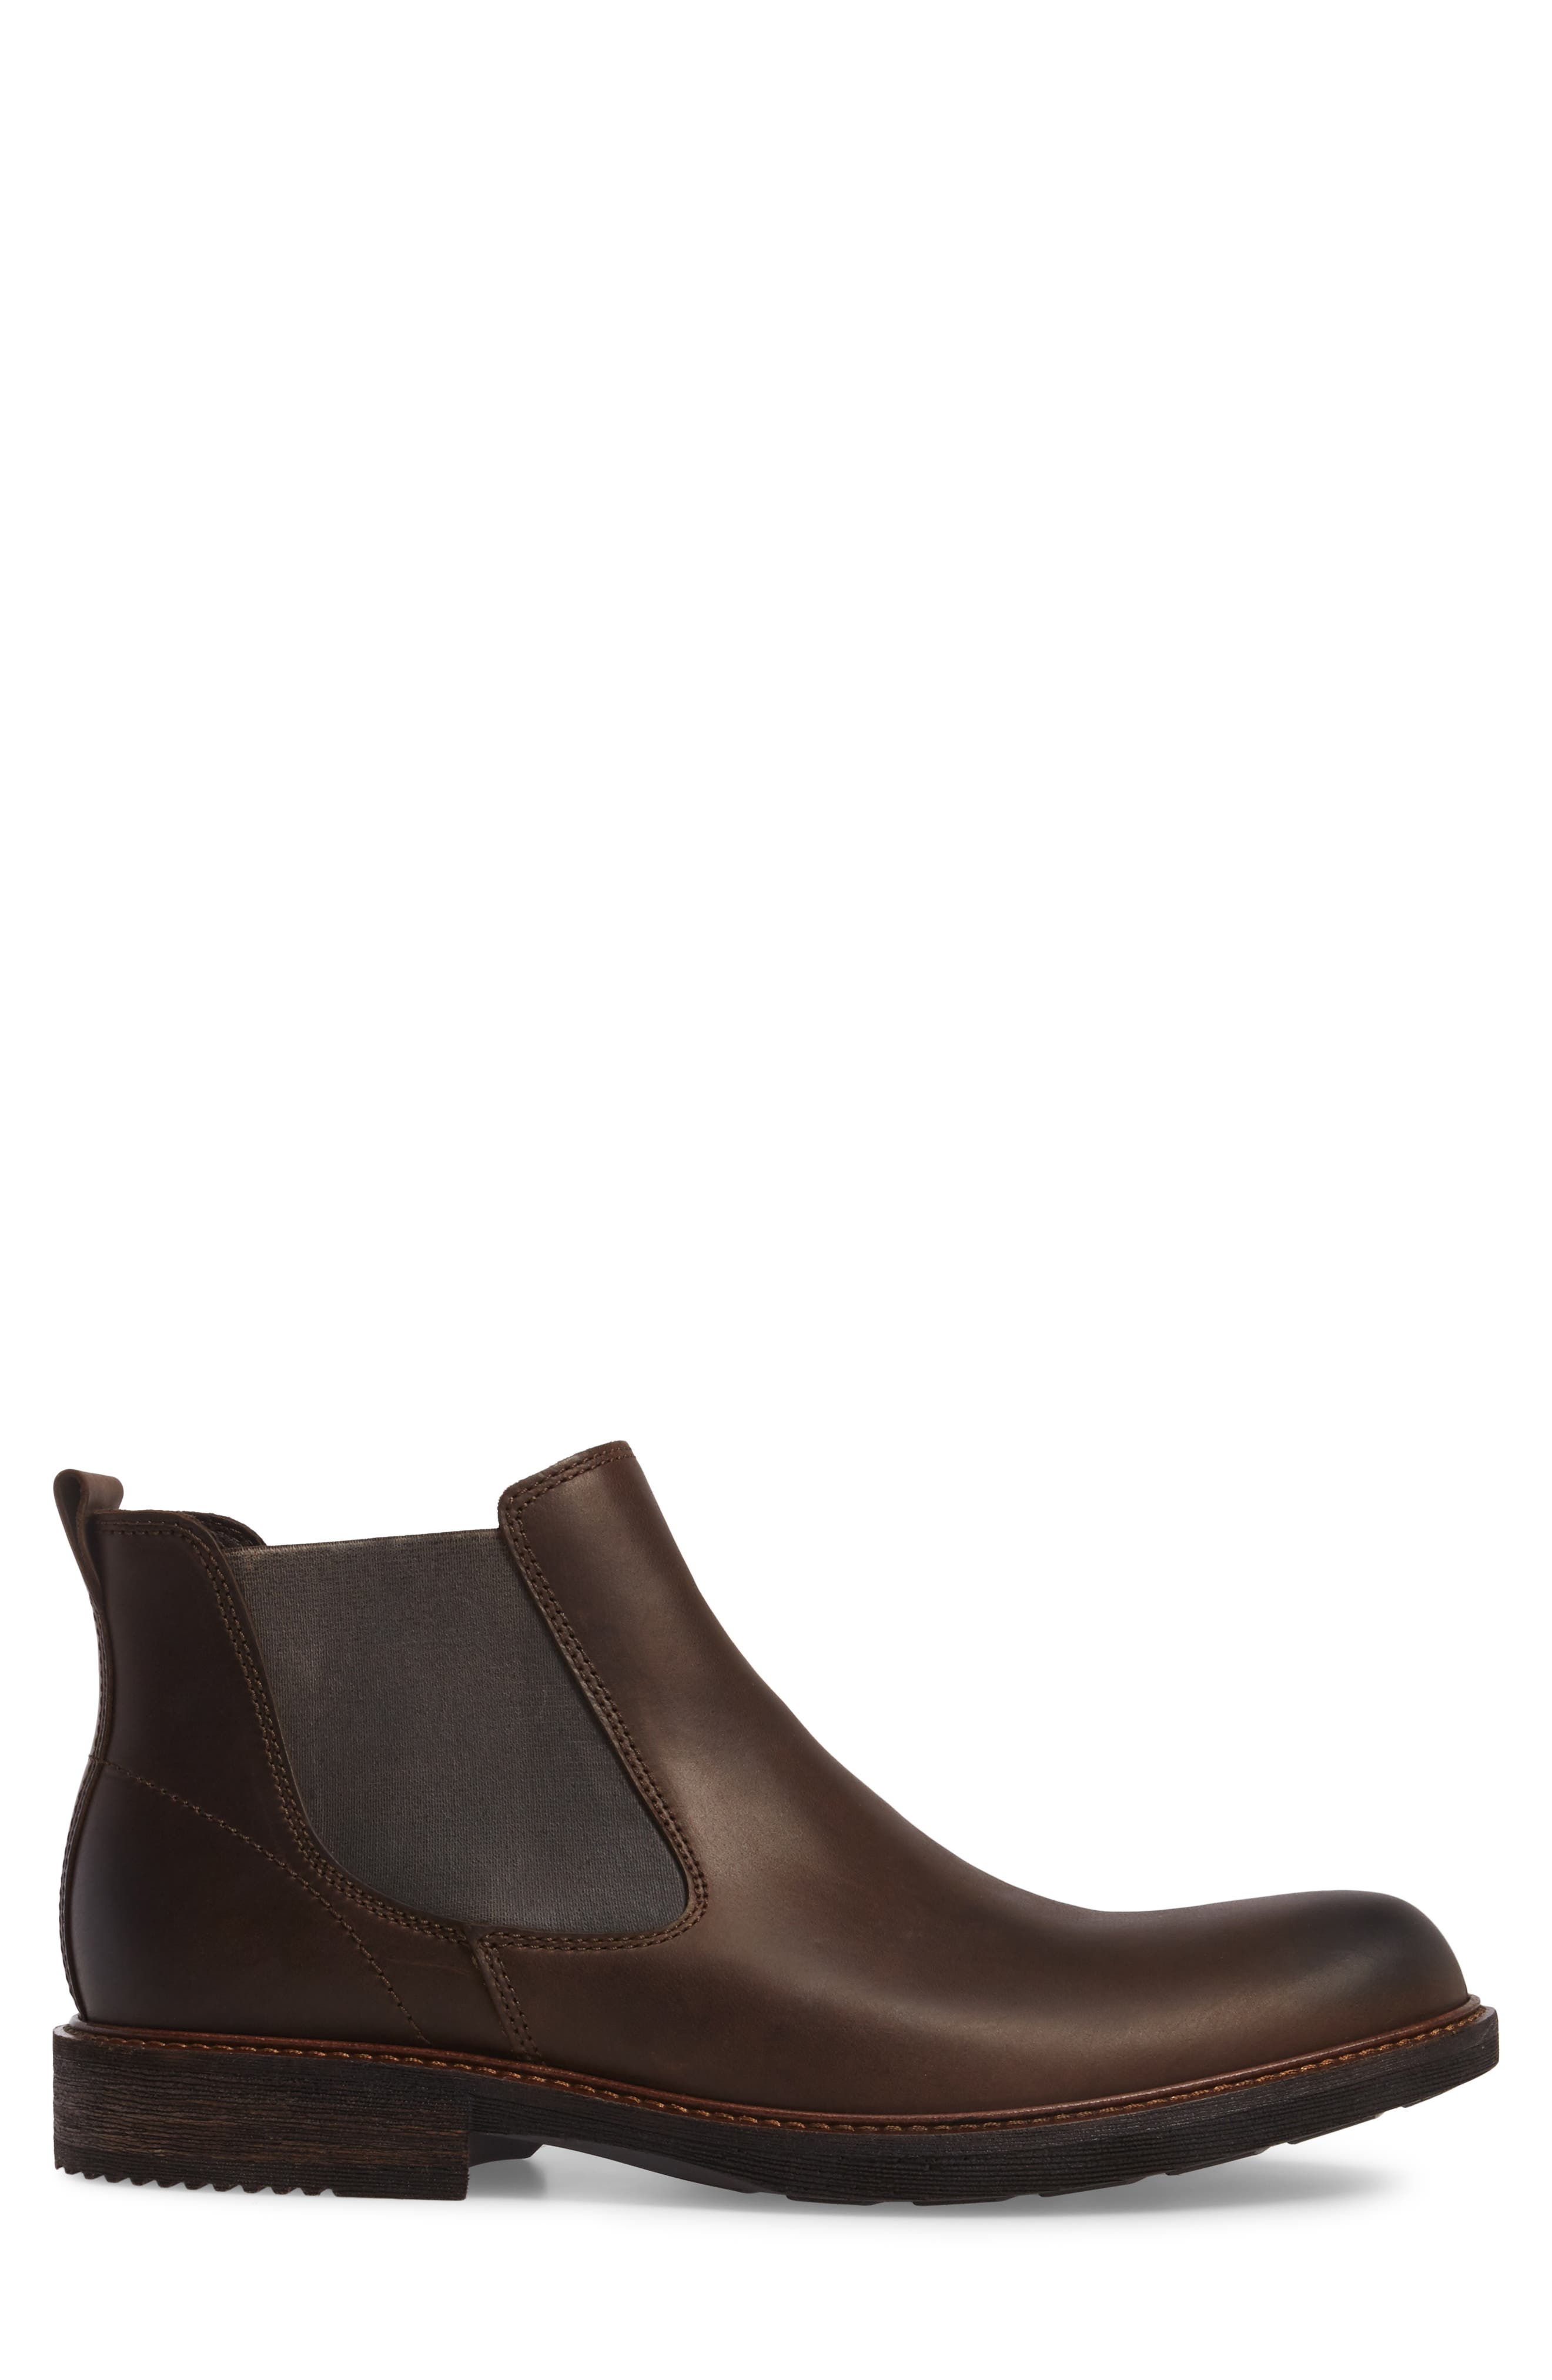 Kenton Chelsea Boot,                             Alternate thumbnail 3, color,                             217